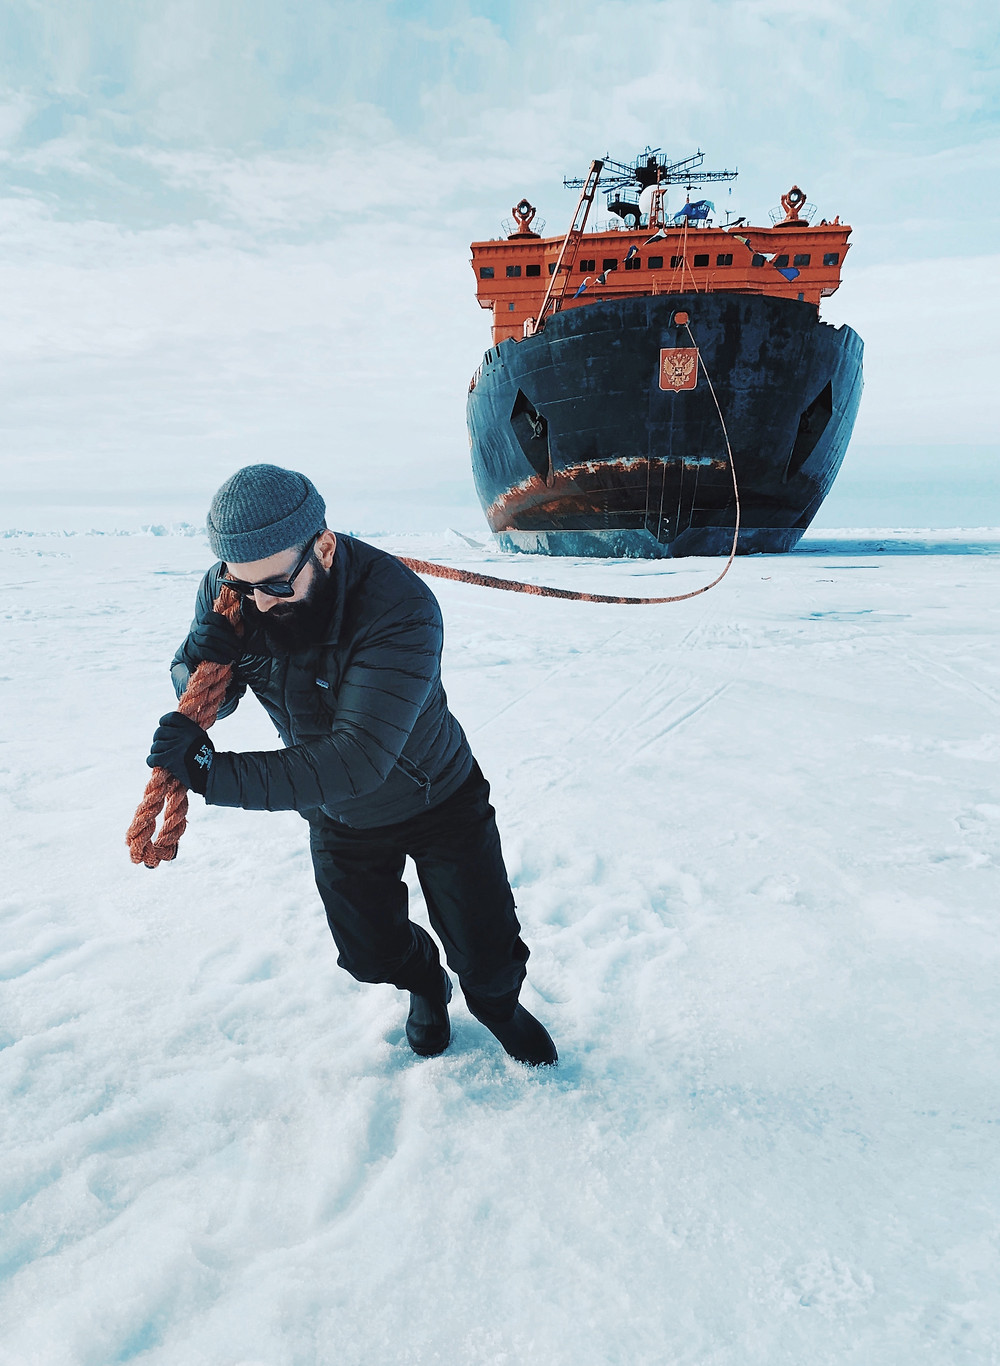 Icebreaker, north pole, 50 years of victory, sea ice, john bozinov, expedition guide, expedition guide academy, expedition guide training, photographer, arctic